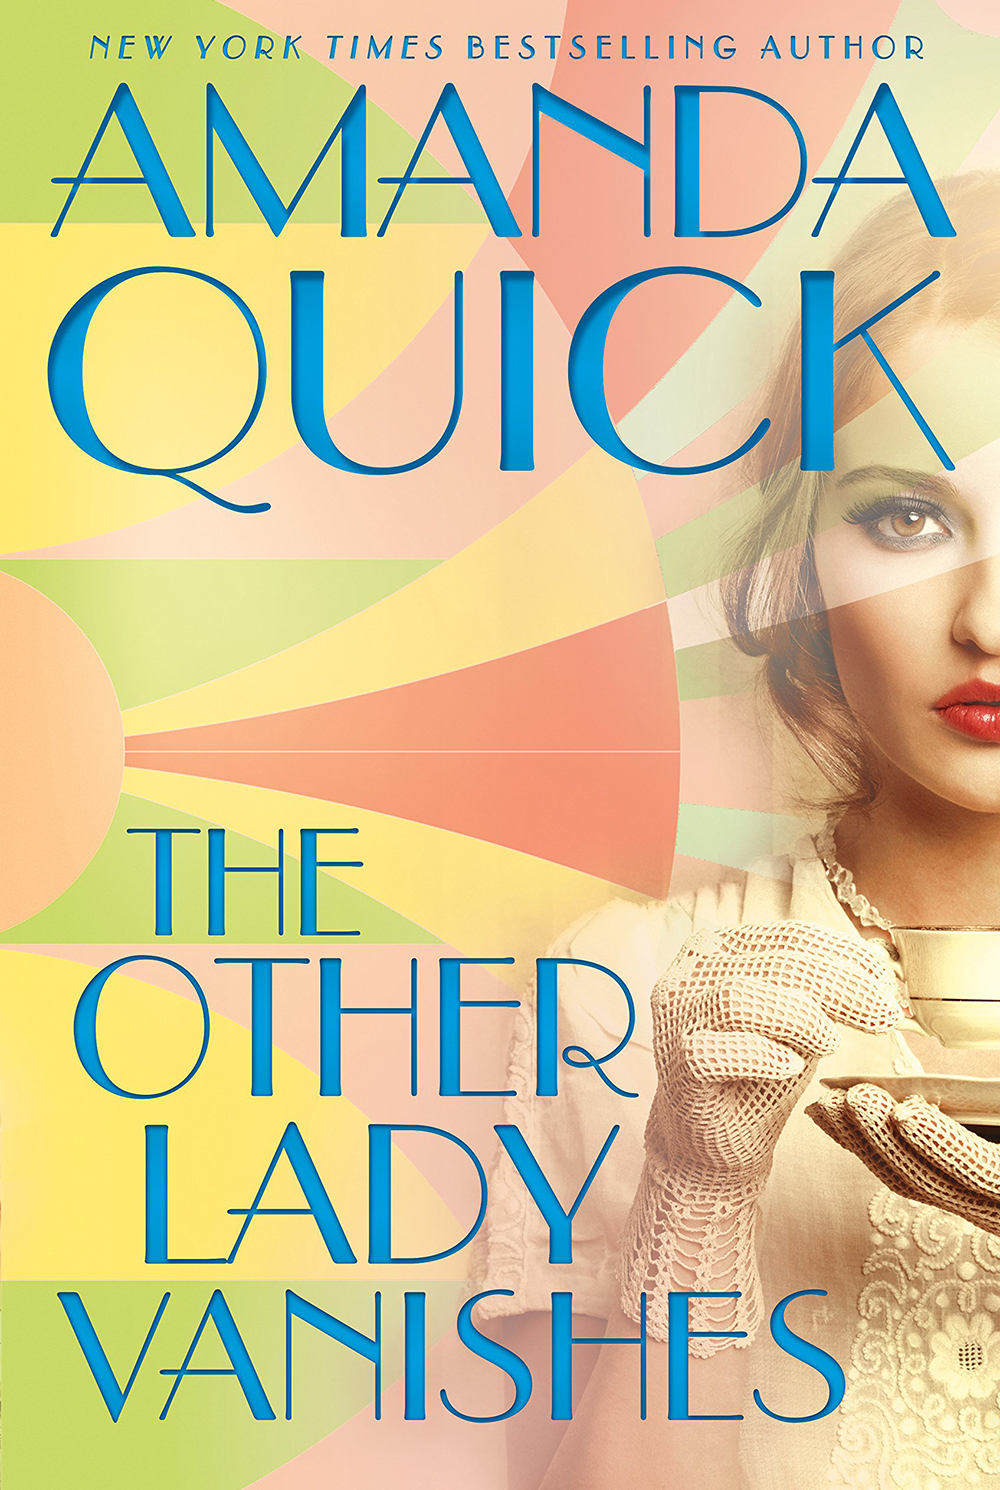 04 The Other Lady Vanishes